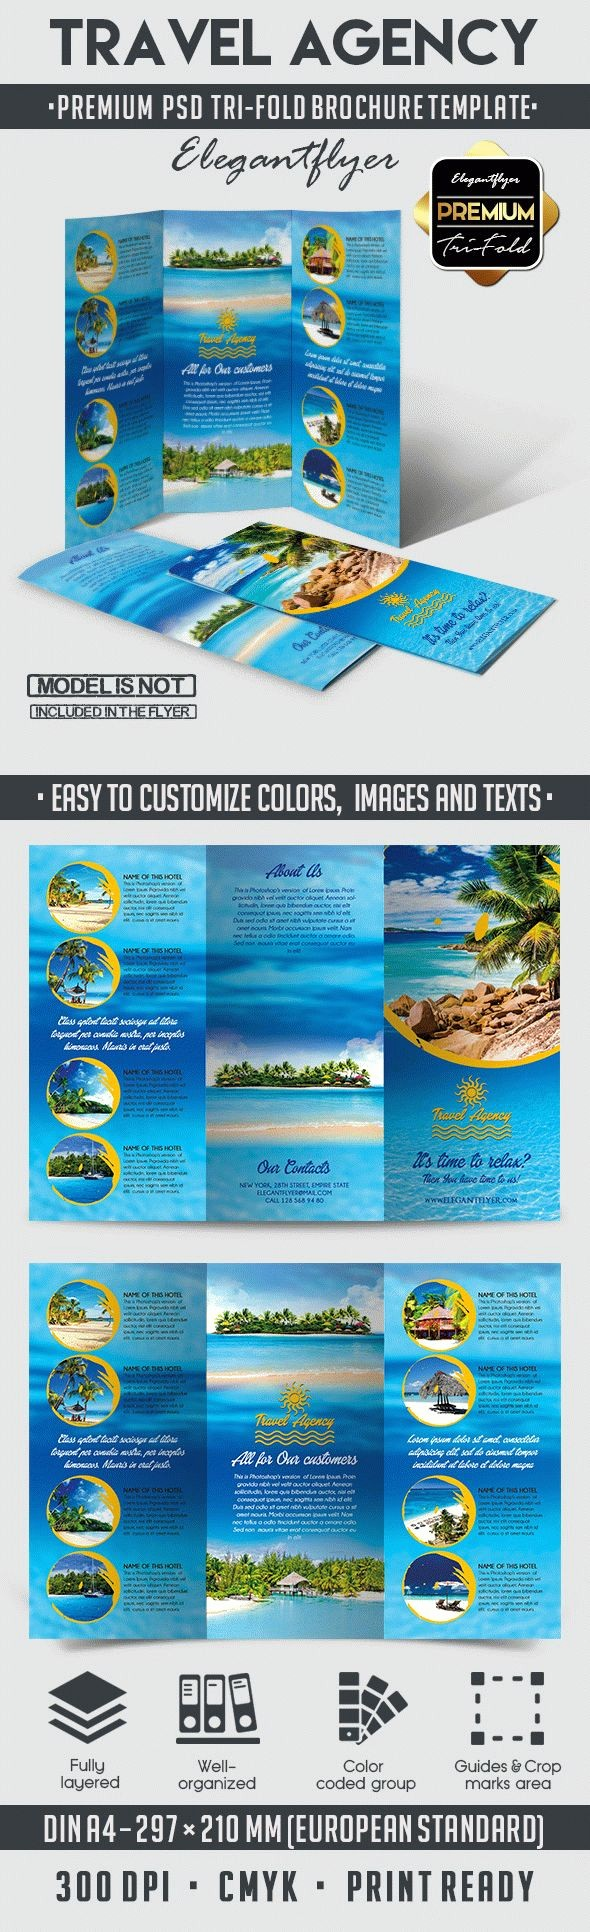 Tri Fold Travel Brochure Examples Unique Travel Agency – Tri Fold Brochure Psd Template – by